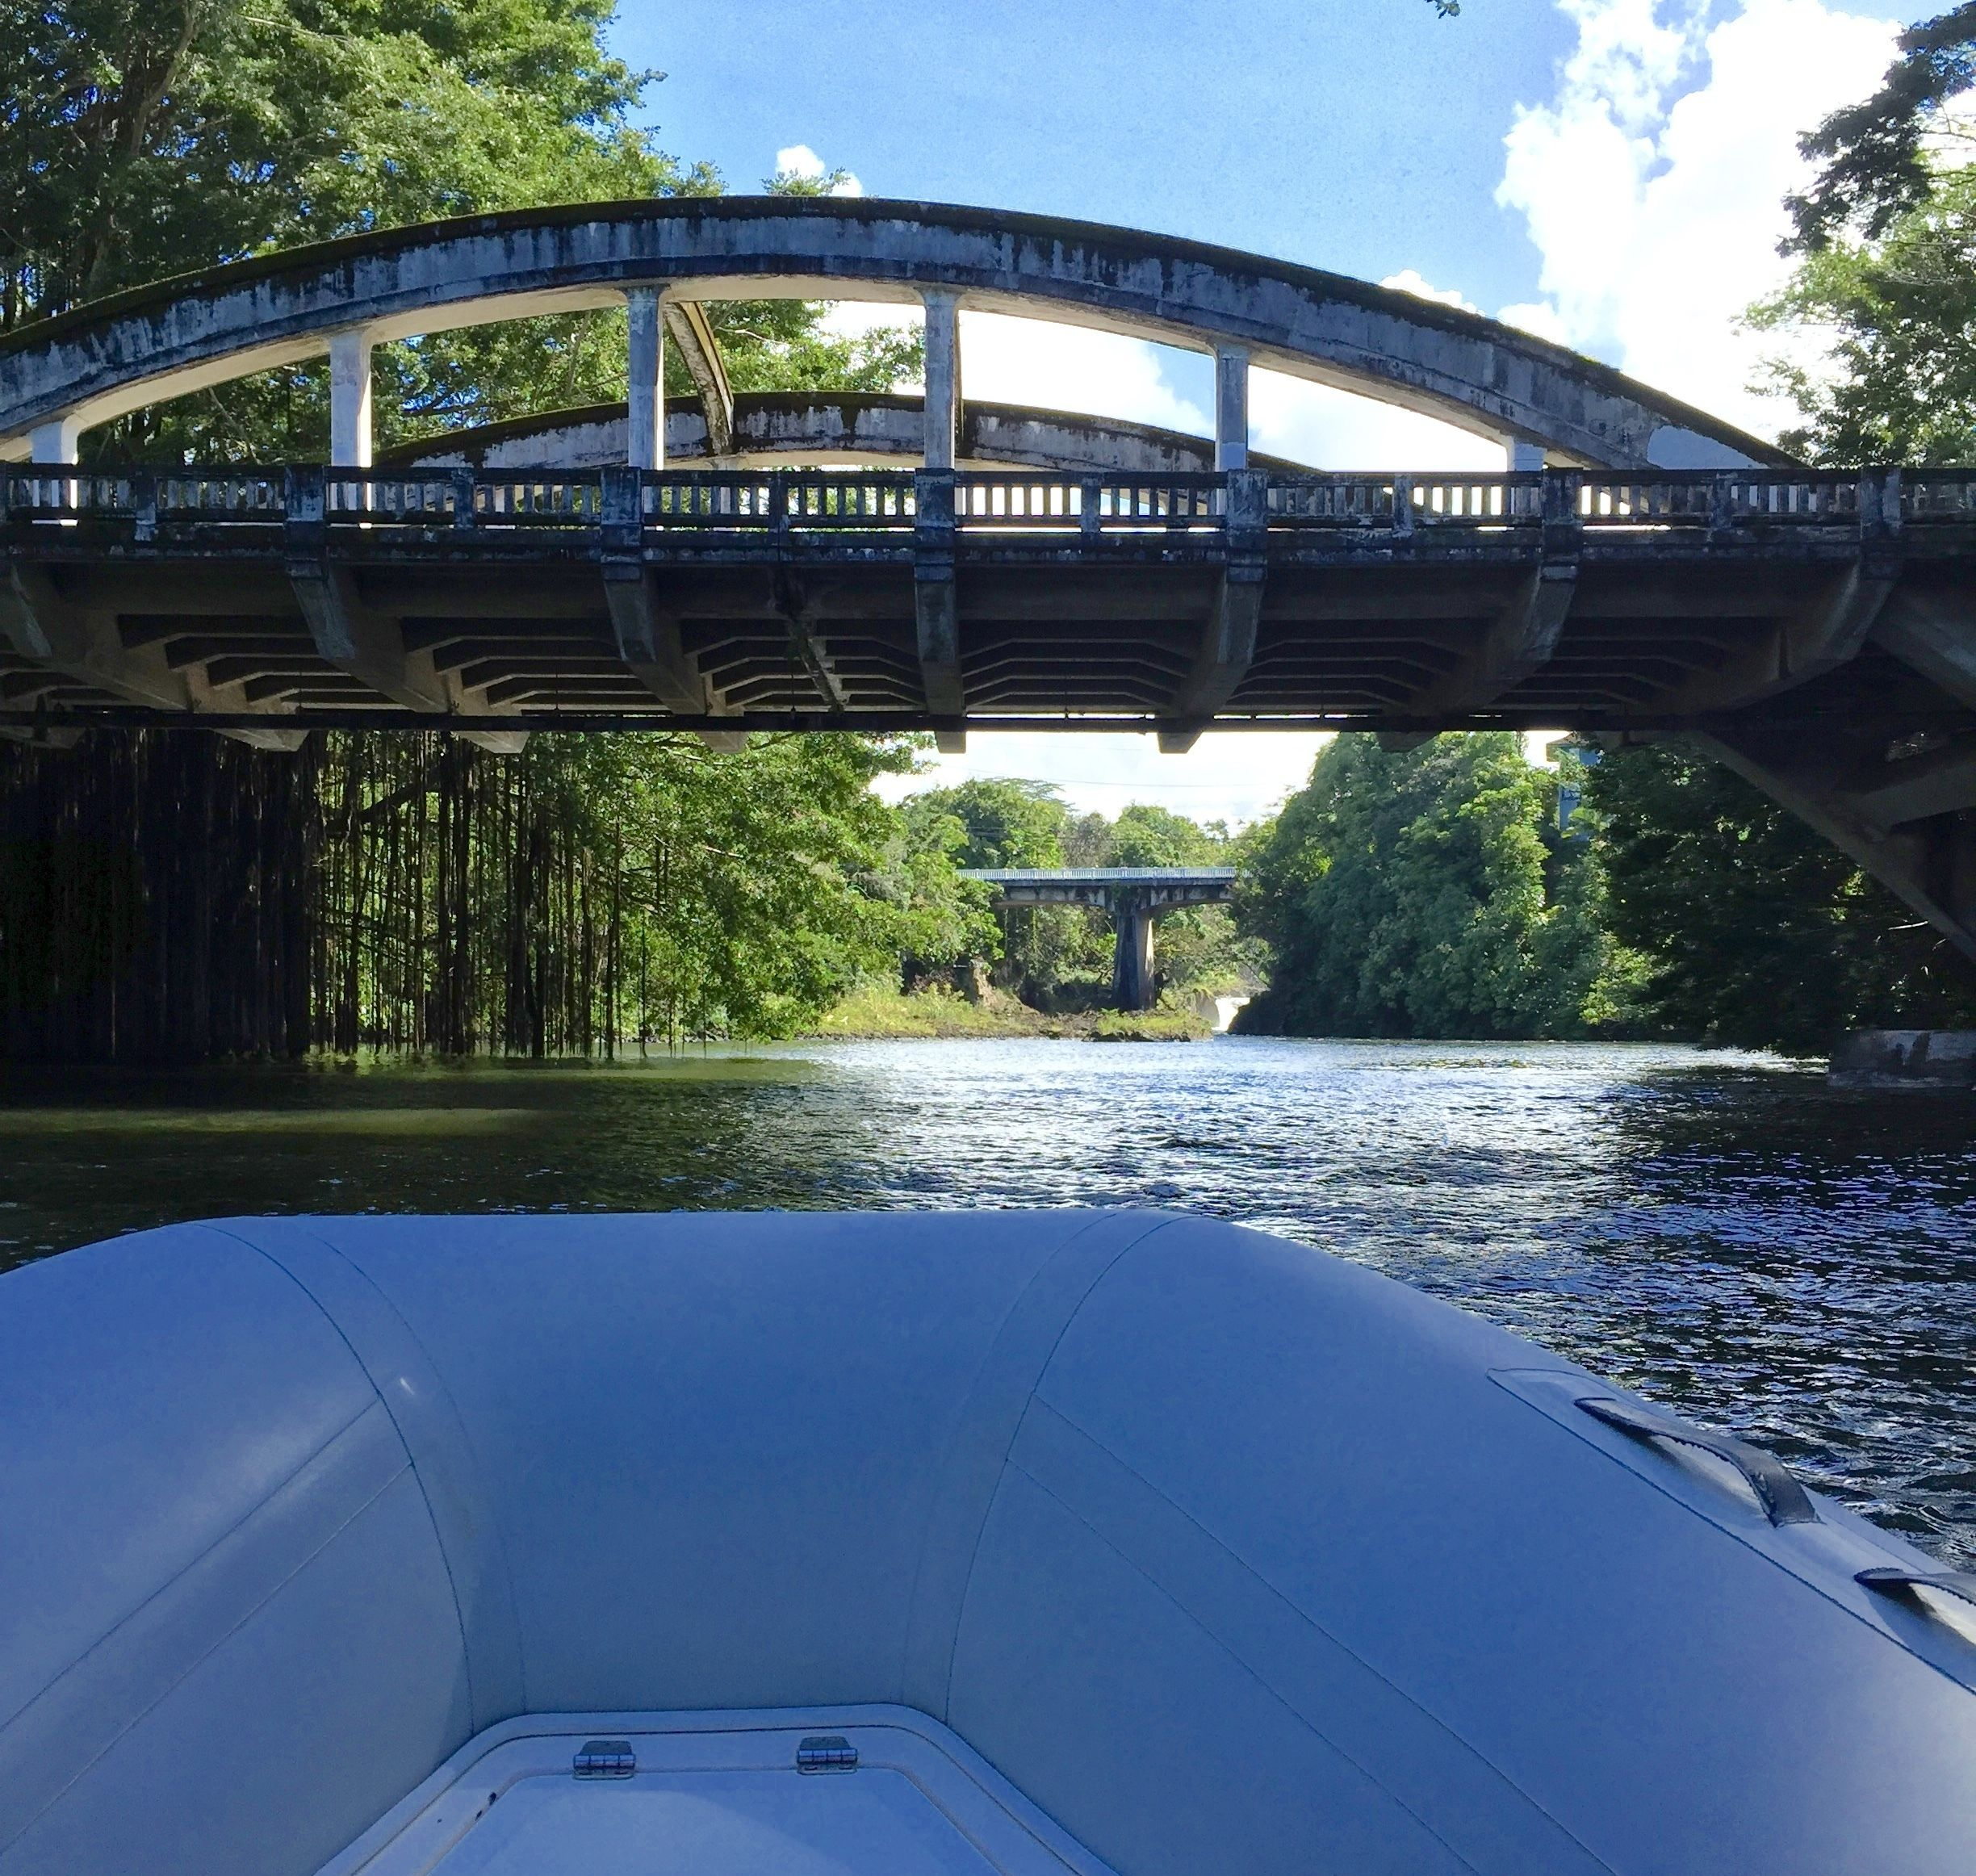 View from a boat going under a bridge on a river on Big Island